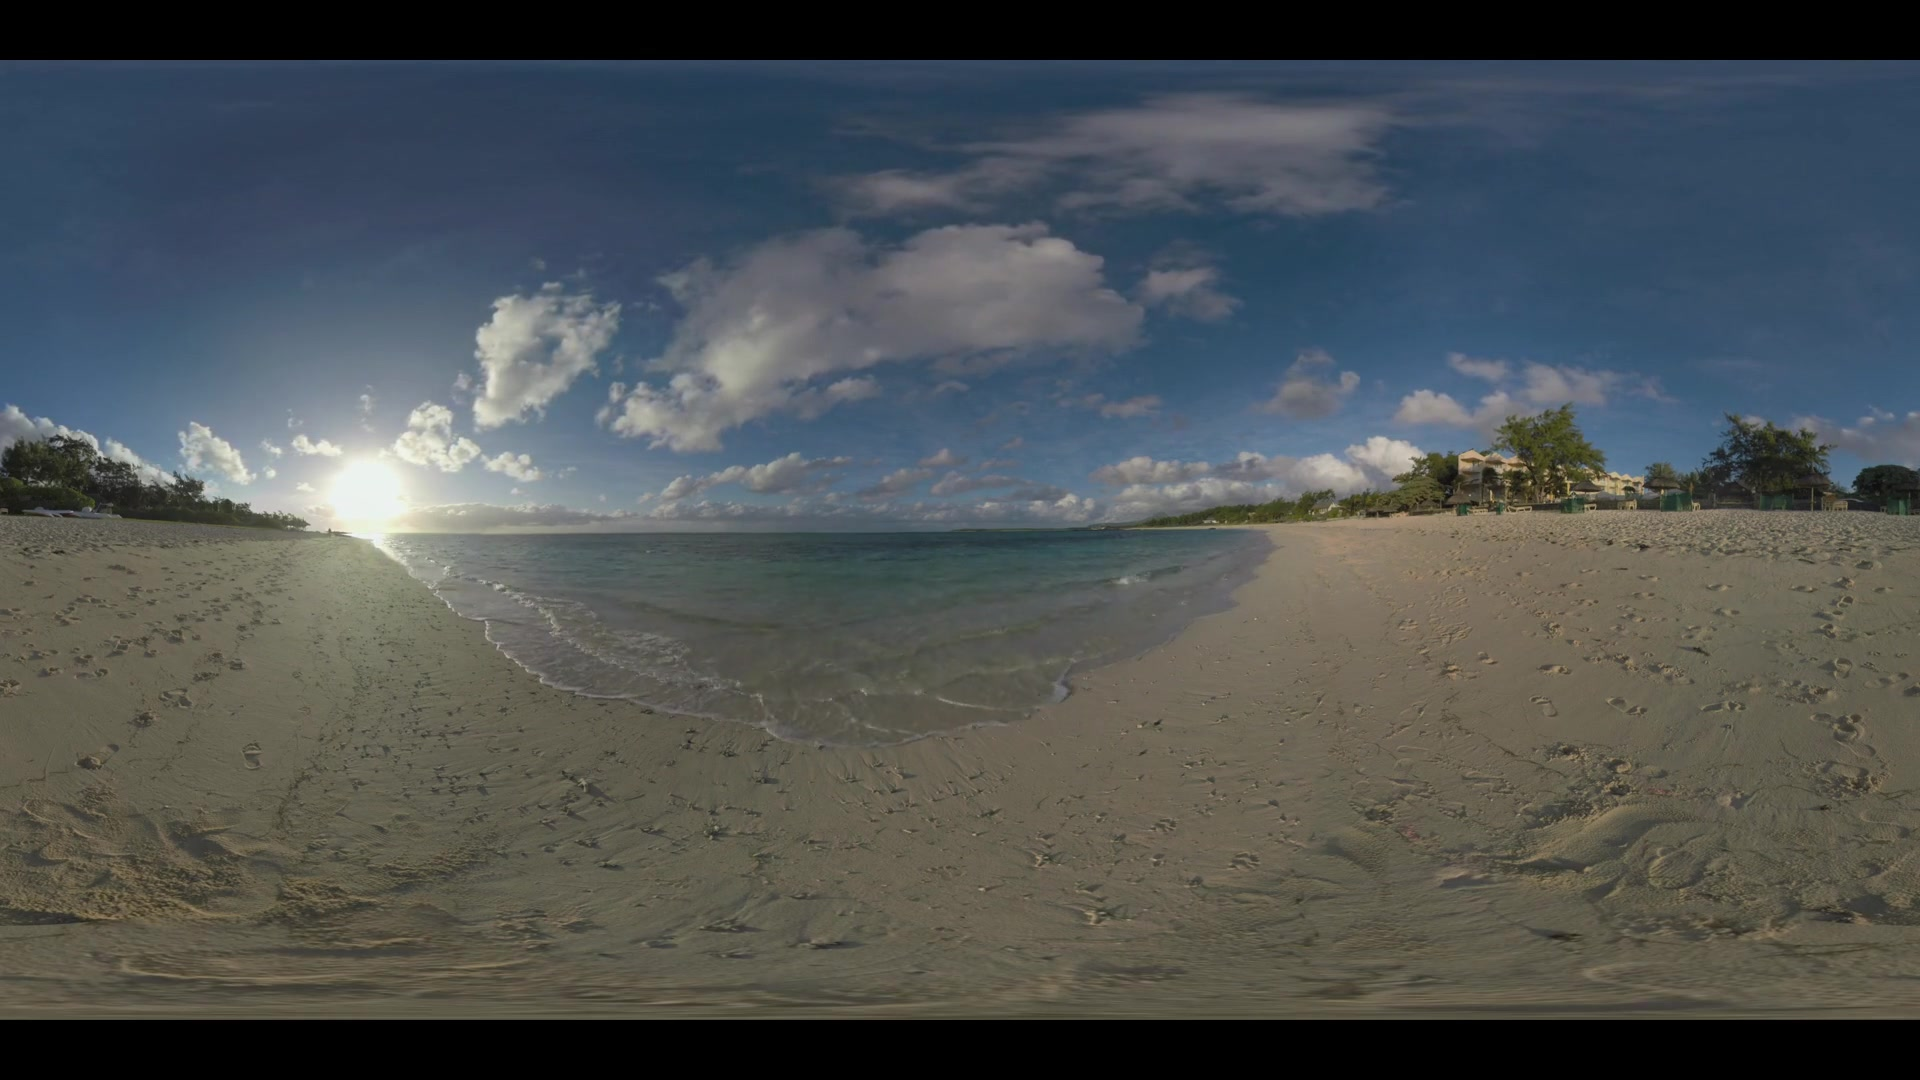 MAURITIUS ISLAND - JUNE 08, 2016: 360 VR video. Vacation scene of Mauritius. Blue ocean skyline and bright sun with sandy beach, resort on the coast and man walking along it